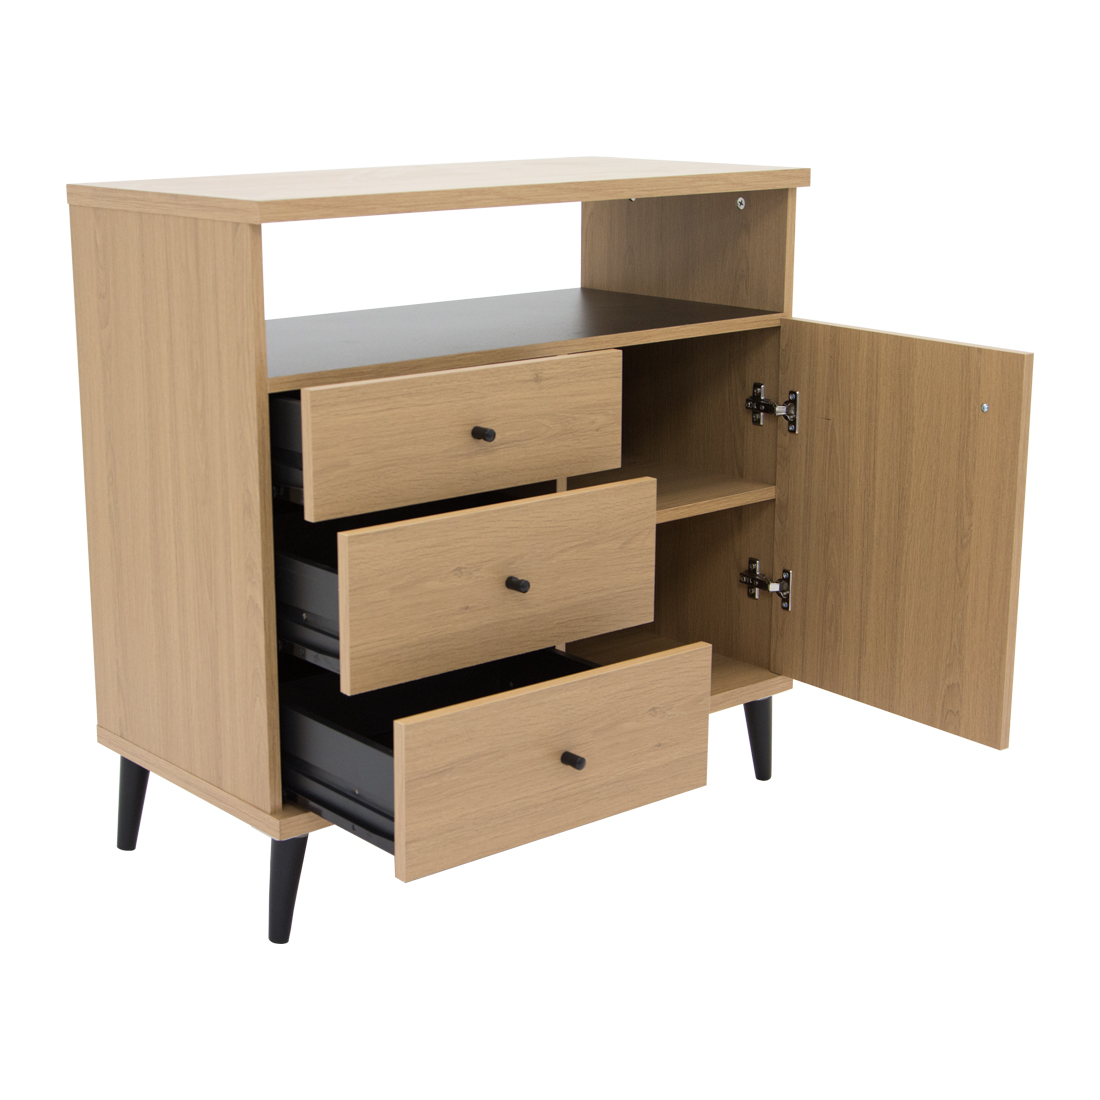 Carnaby_1Door_3Drawer_Sideboard_Right_Open